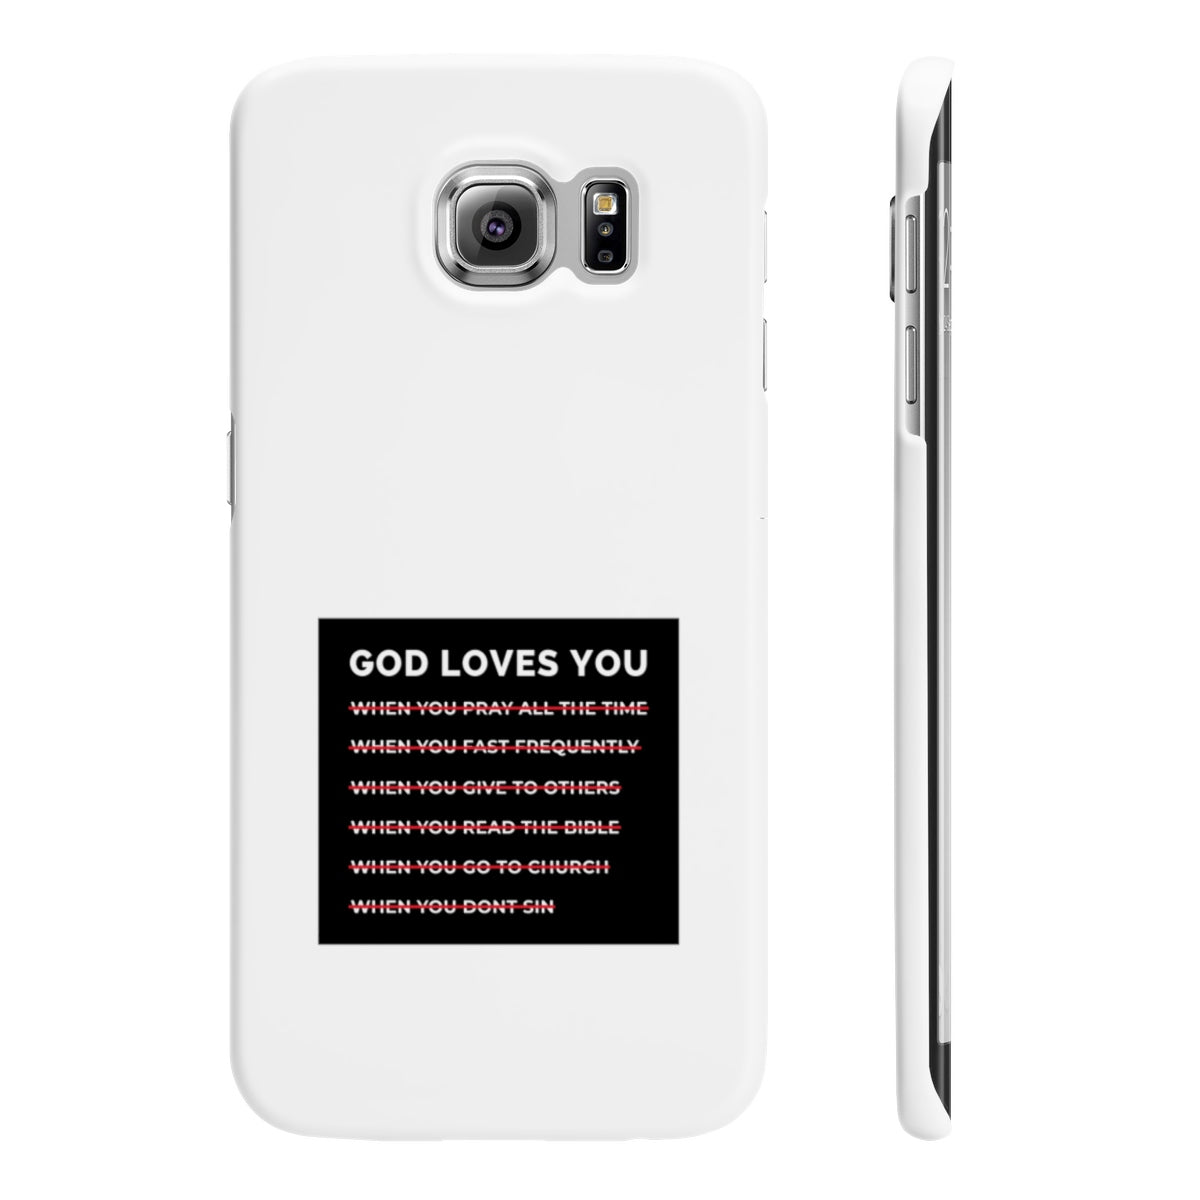 God Loves You Wpaps Slim Phone Cases